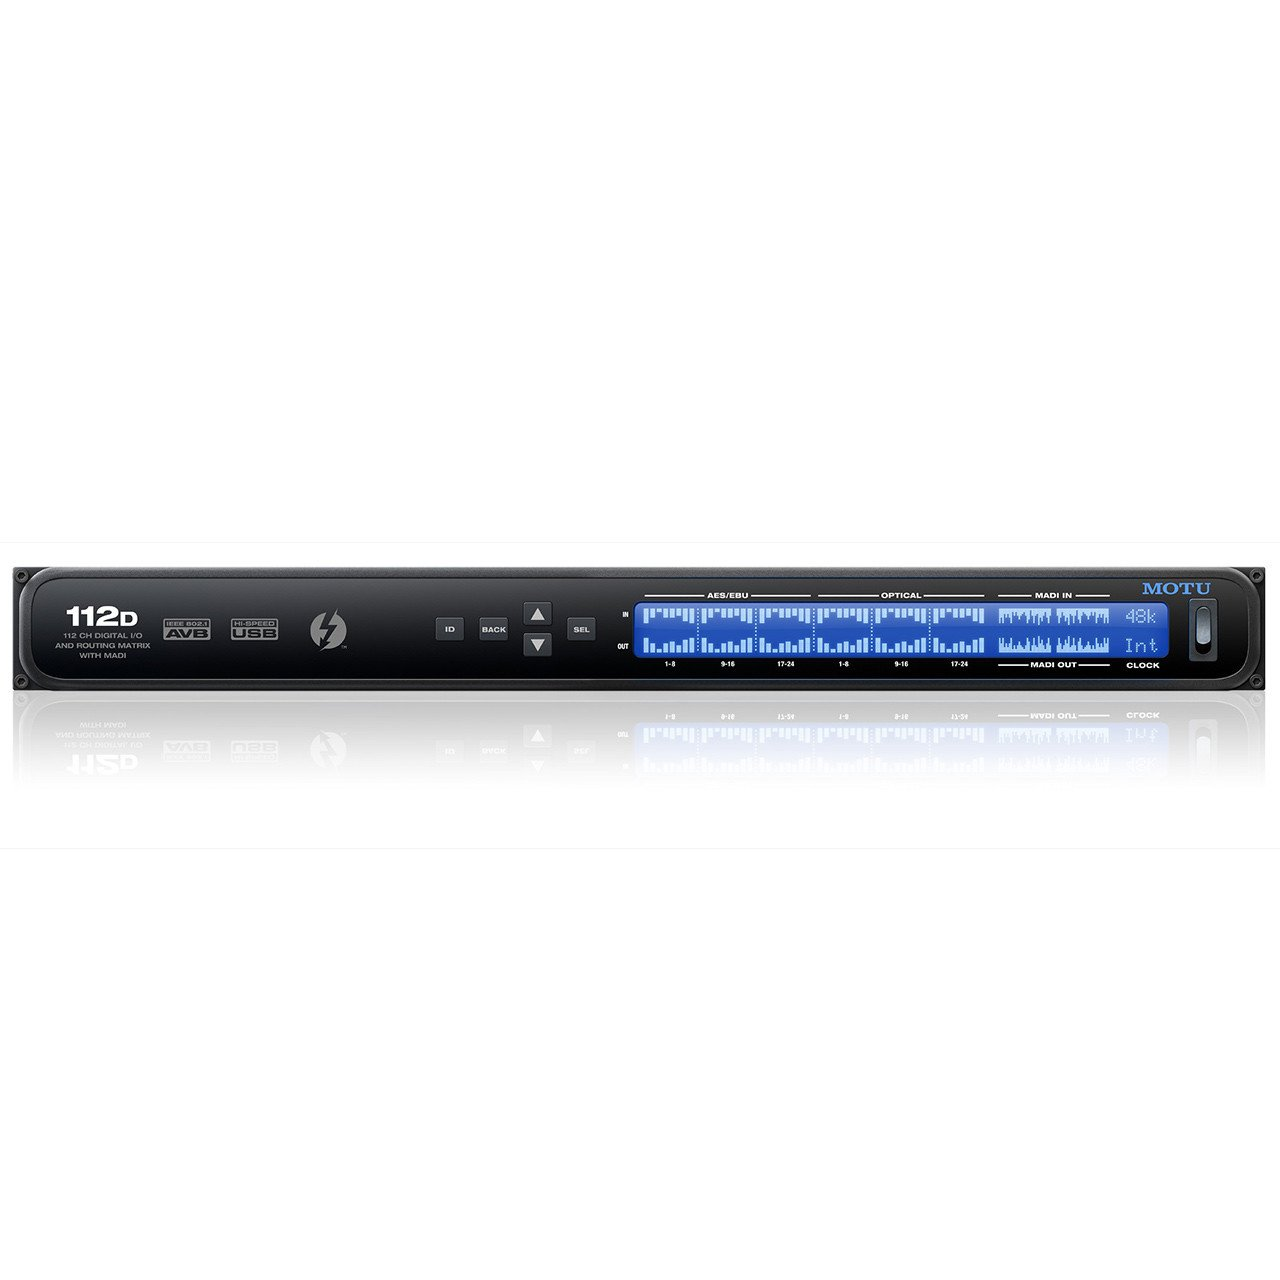 Thunderbolt Interfaces - MOTU 112D Thunderbolt / AVB Ethernet / USB Audio Interface